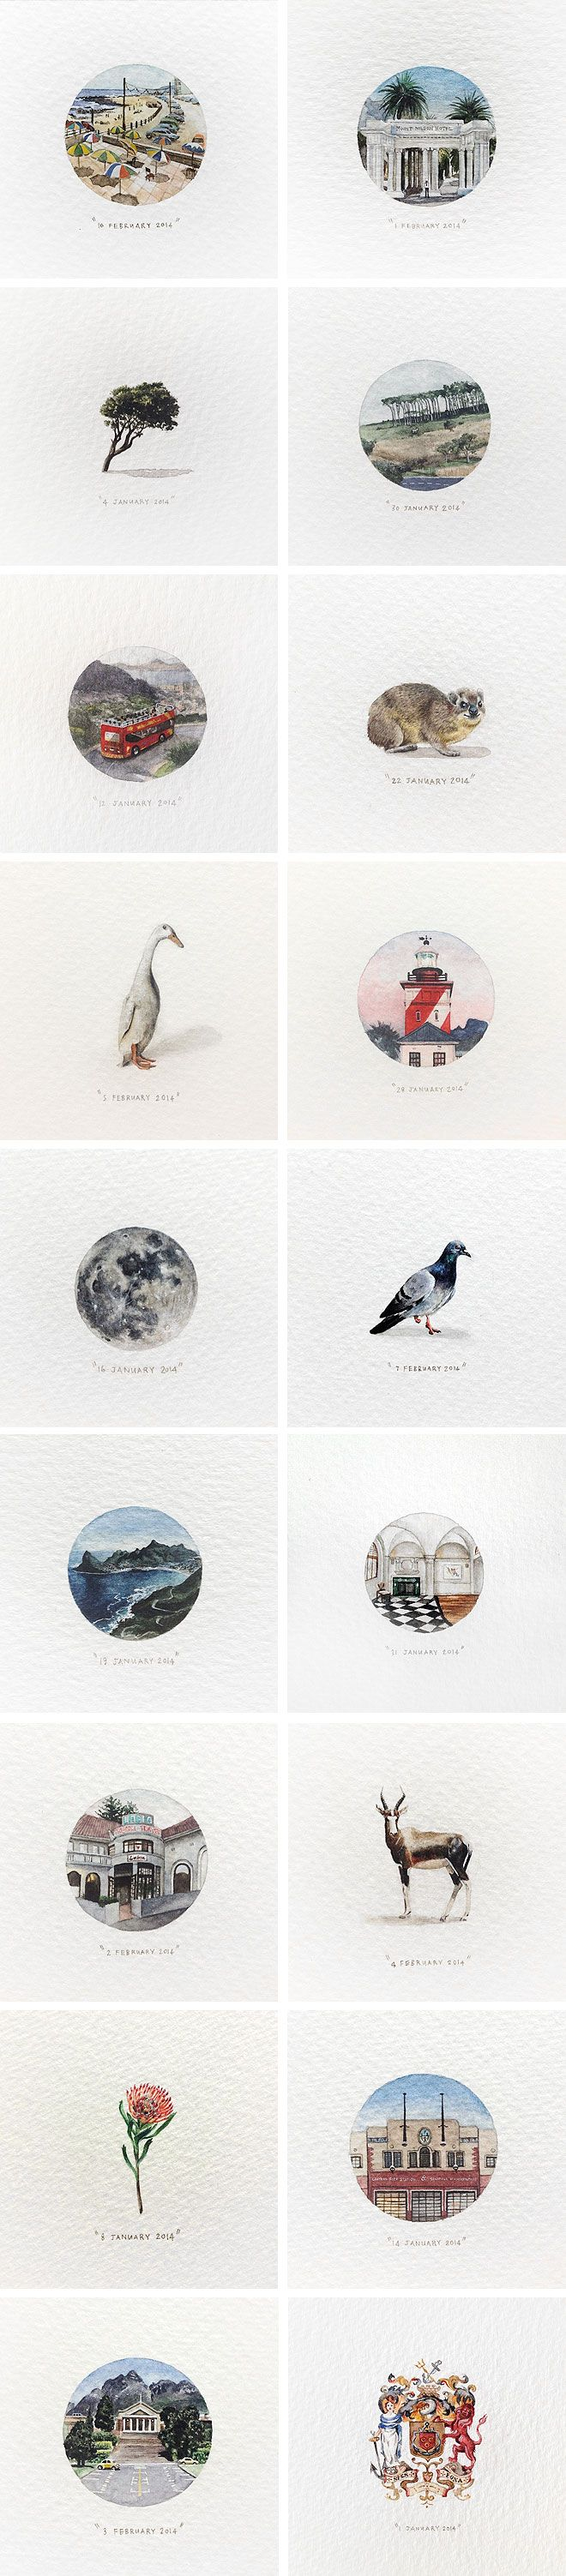 Lorraine Loots // Paintings for Ants